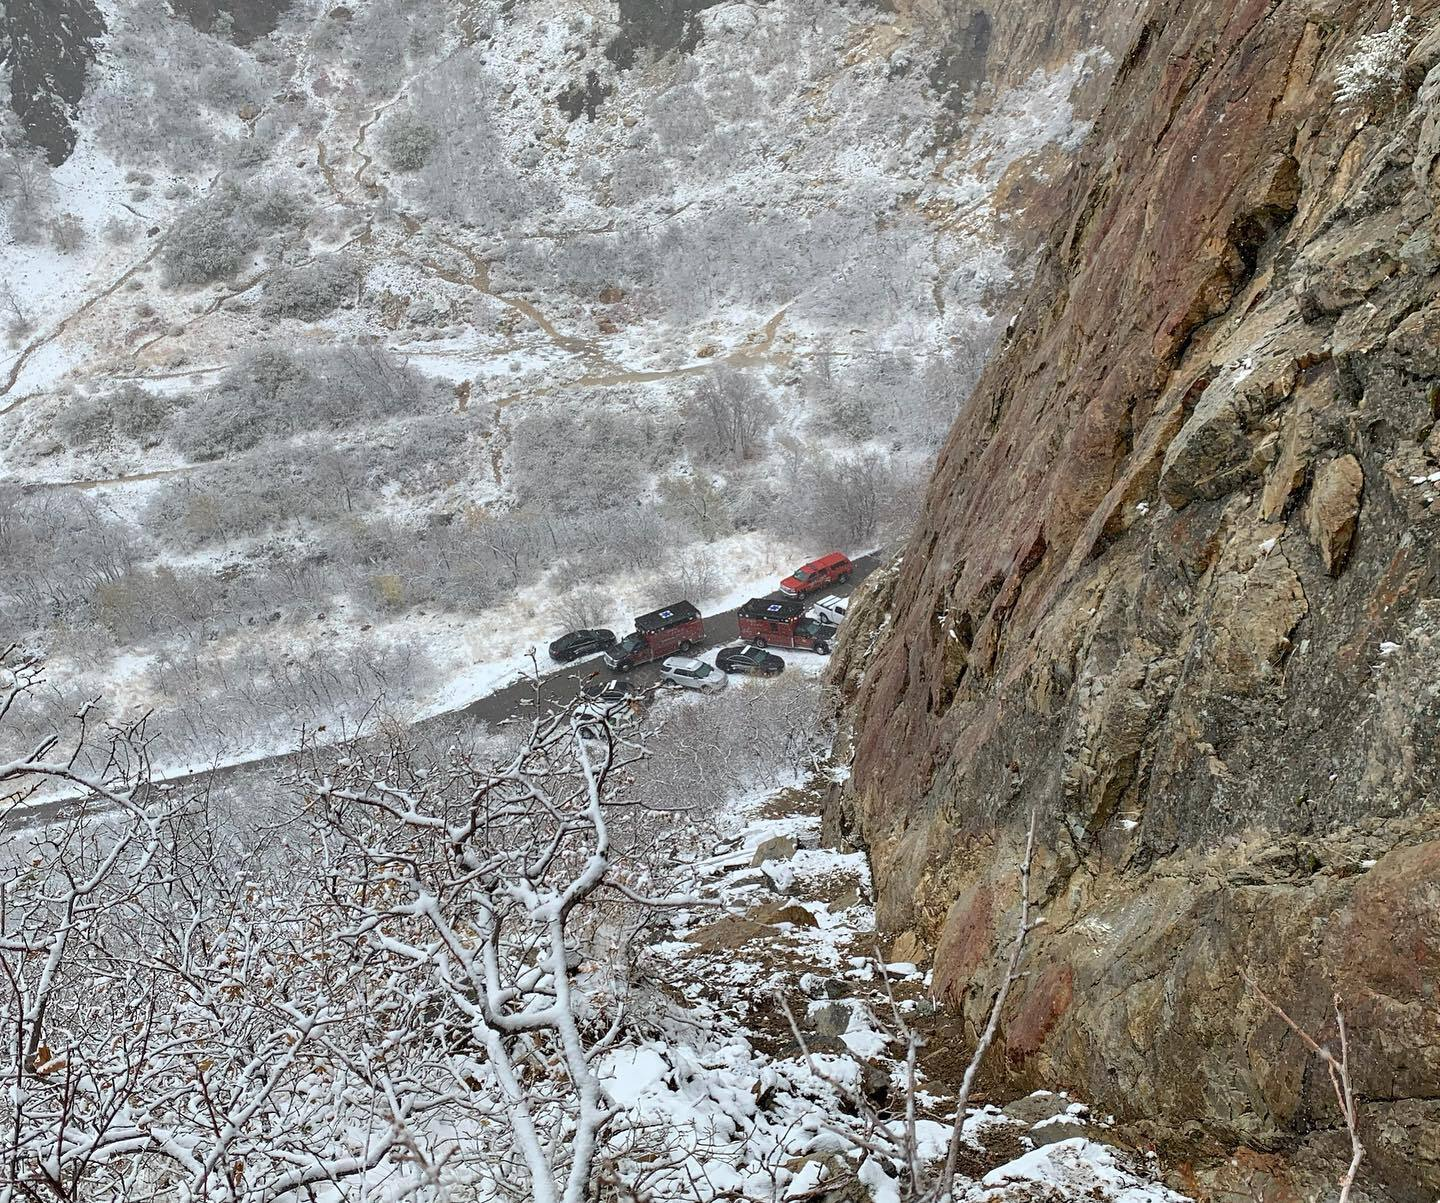 Photos: Hiker rescued in snowy conditions in Rock Canyon nearProvo